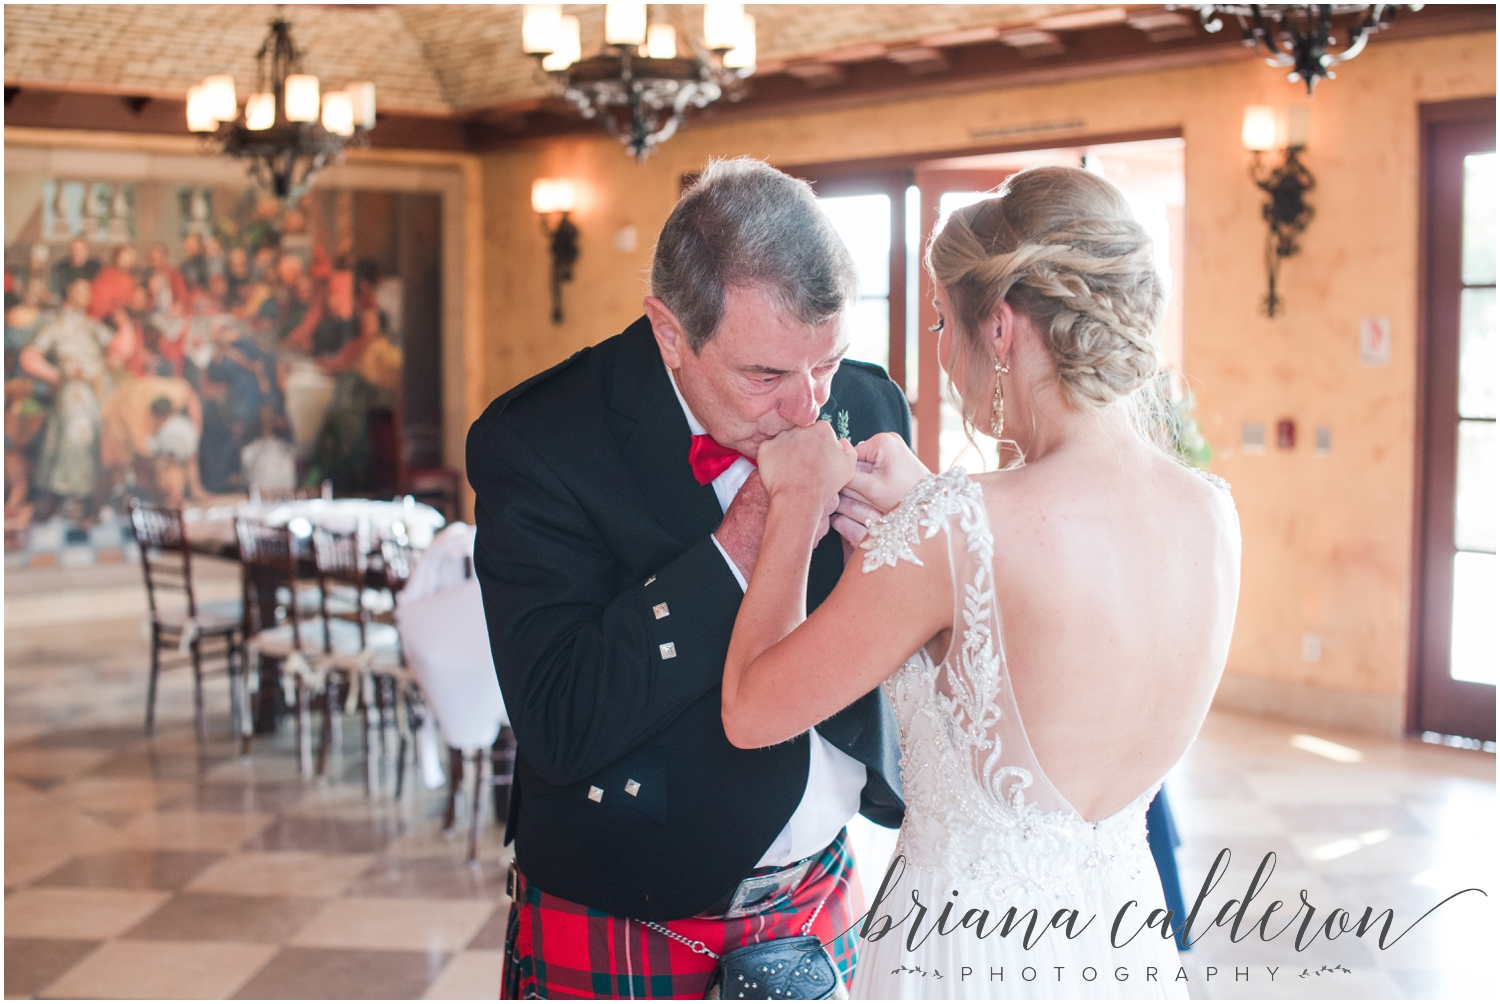 Regale Winery Wedding photos by Briana Calderon Photography_0662.jpg